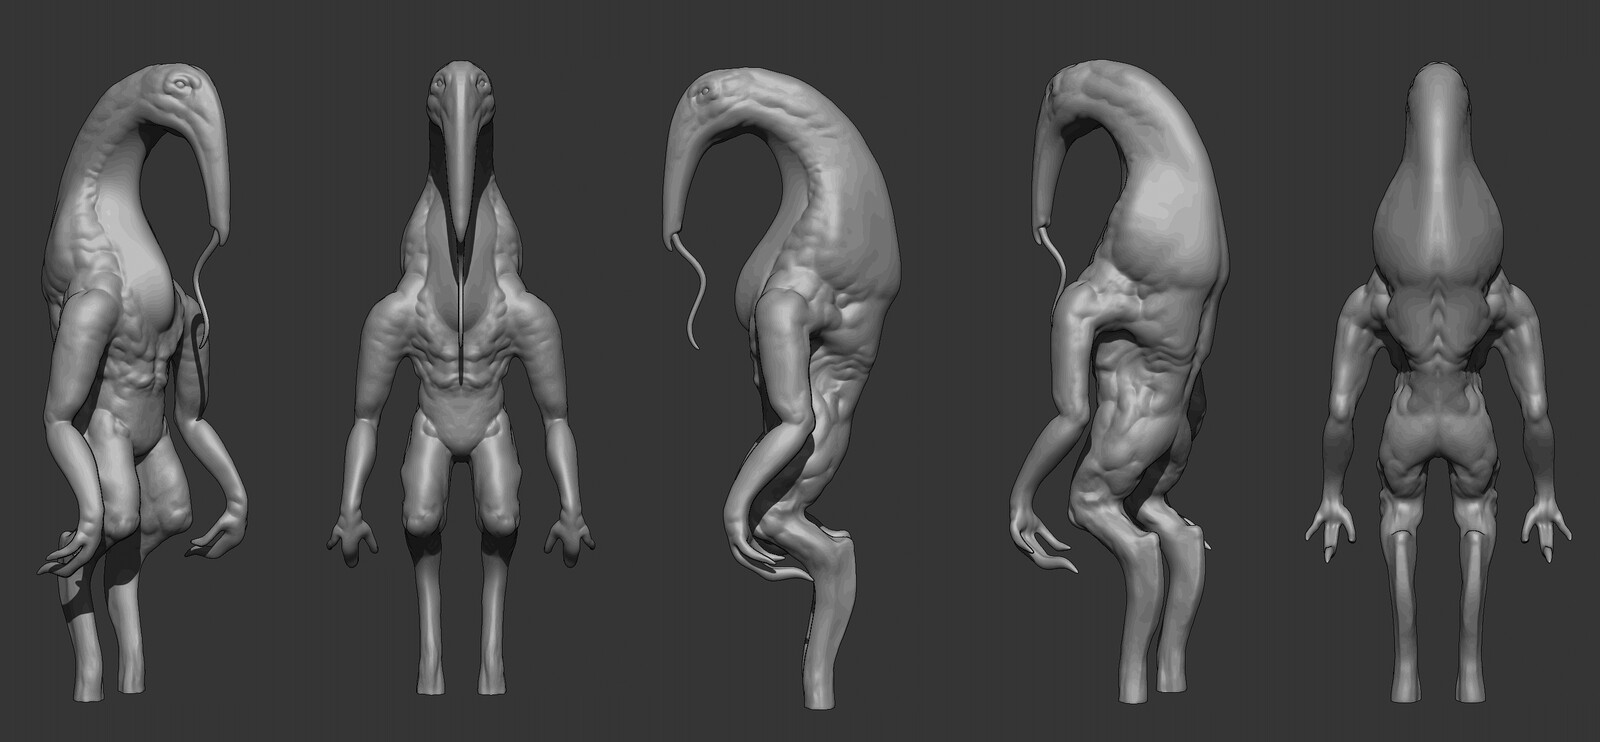 Antbear [Alien Creature Design Sculpt]